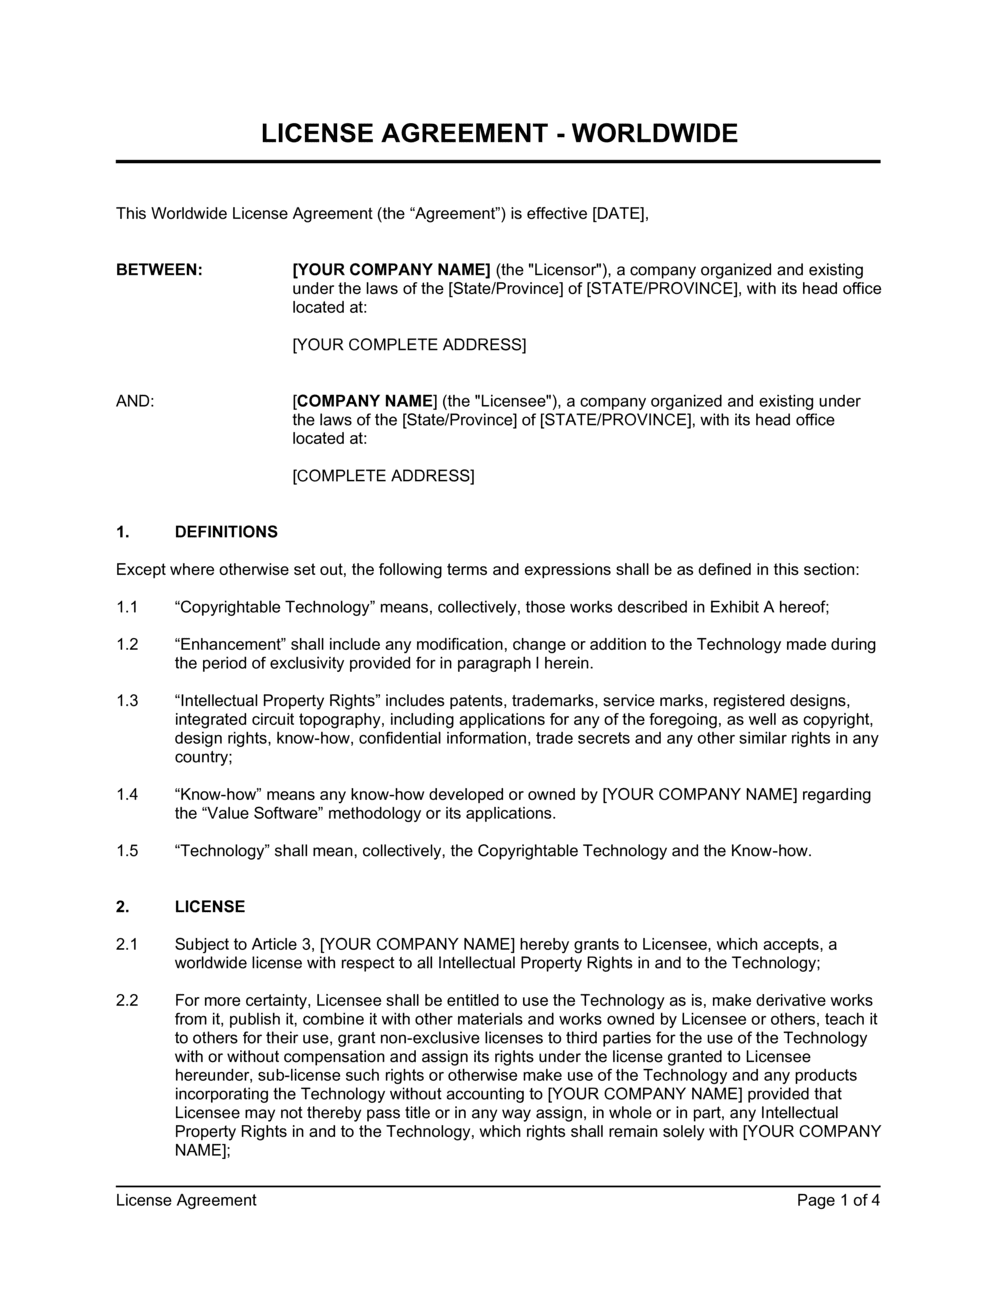 Business-in-a-Box's License Agreement Worldwide License Template